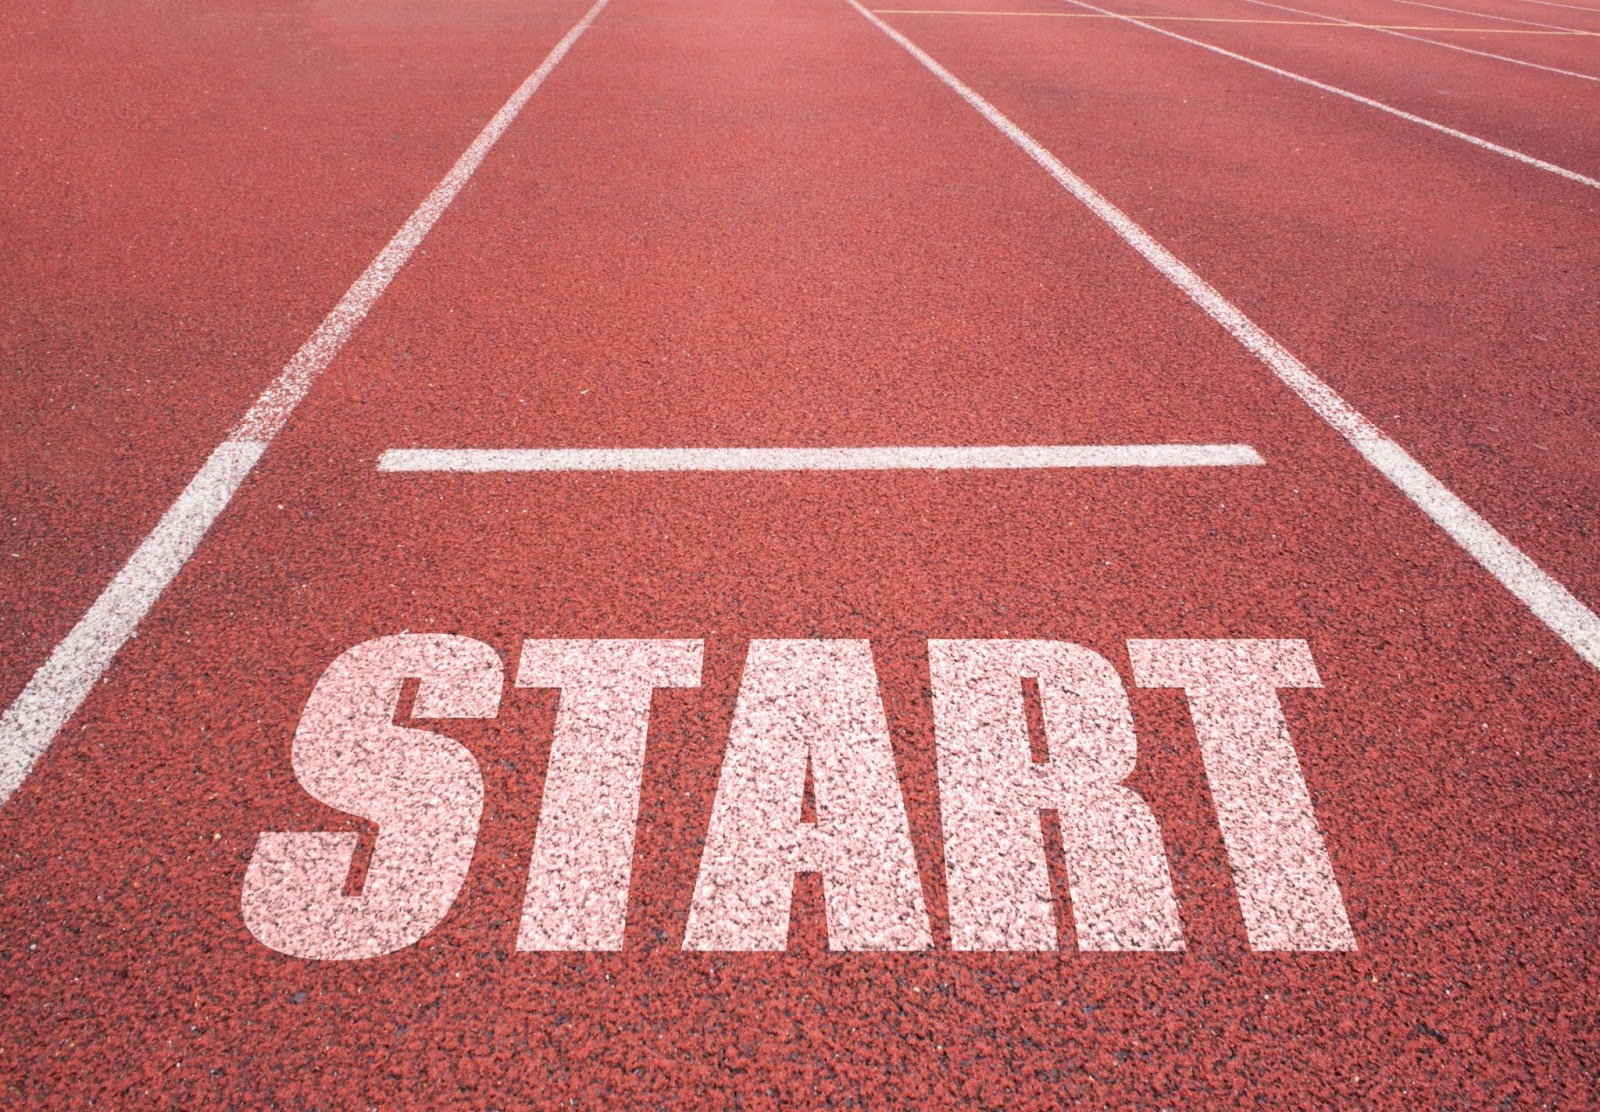 real estate investing for beginners: starting spot on track and field